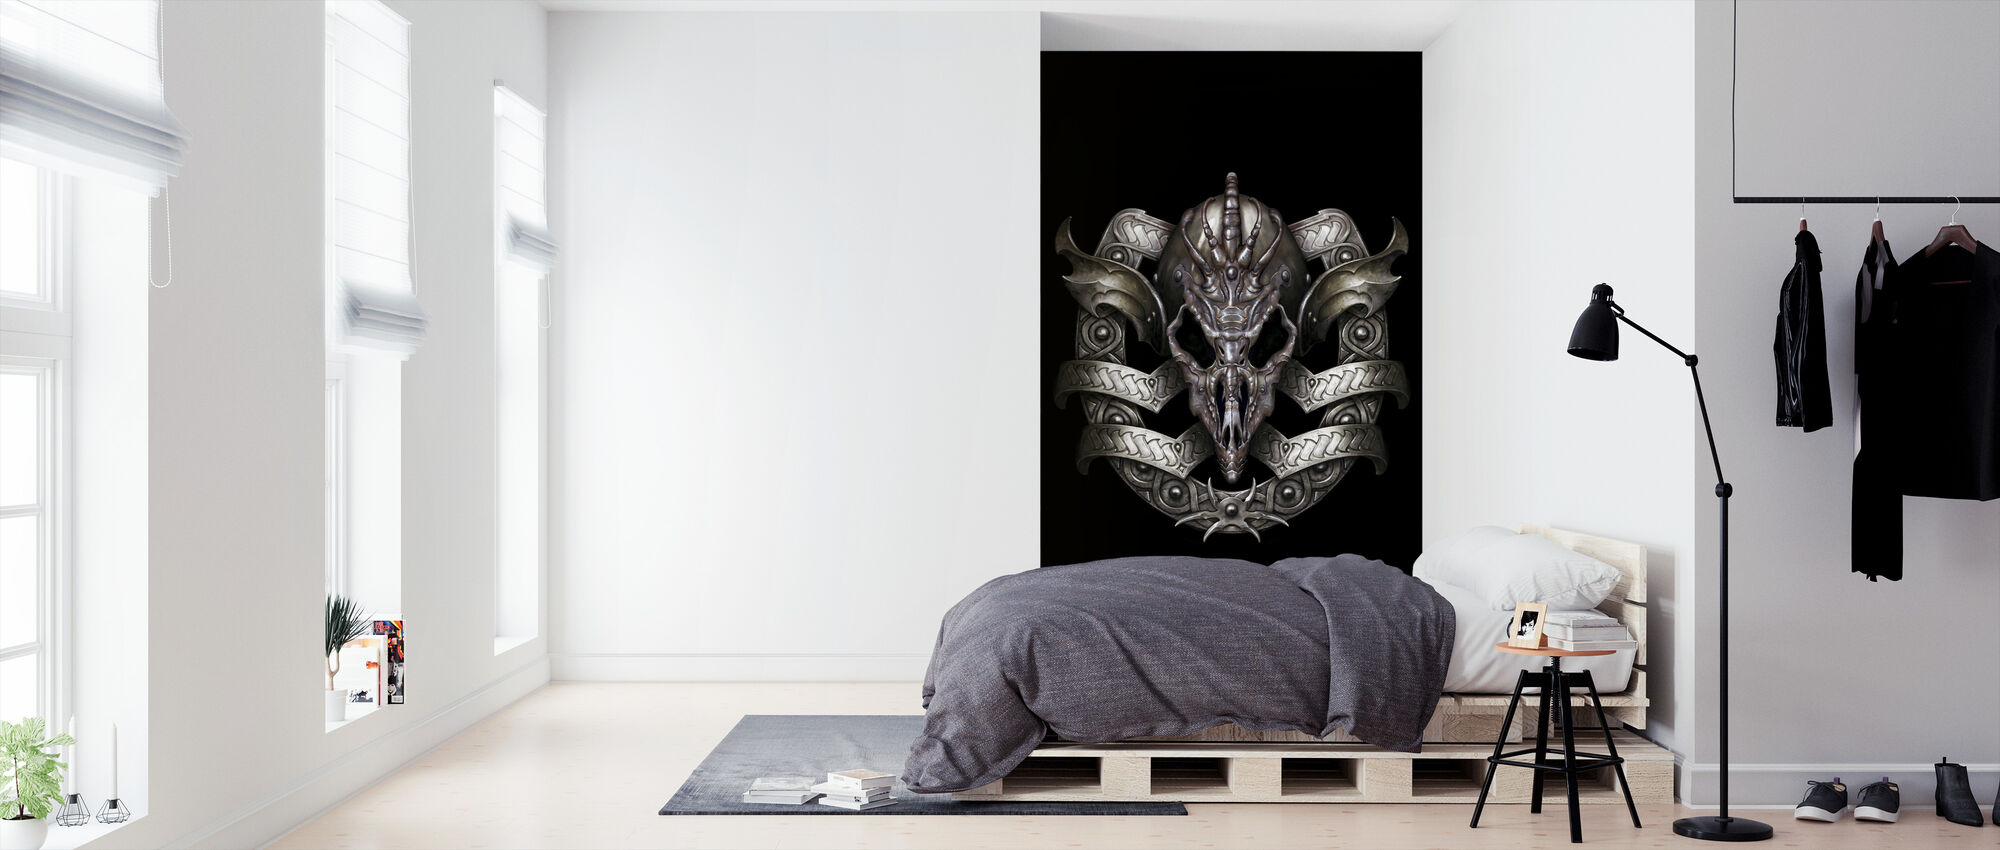 Escudo - Wallpaper - Bedroom